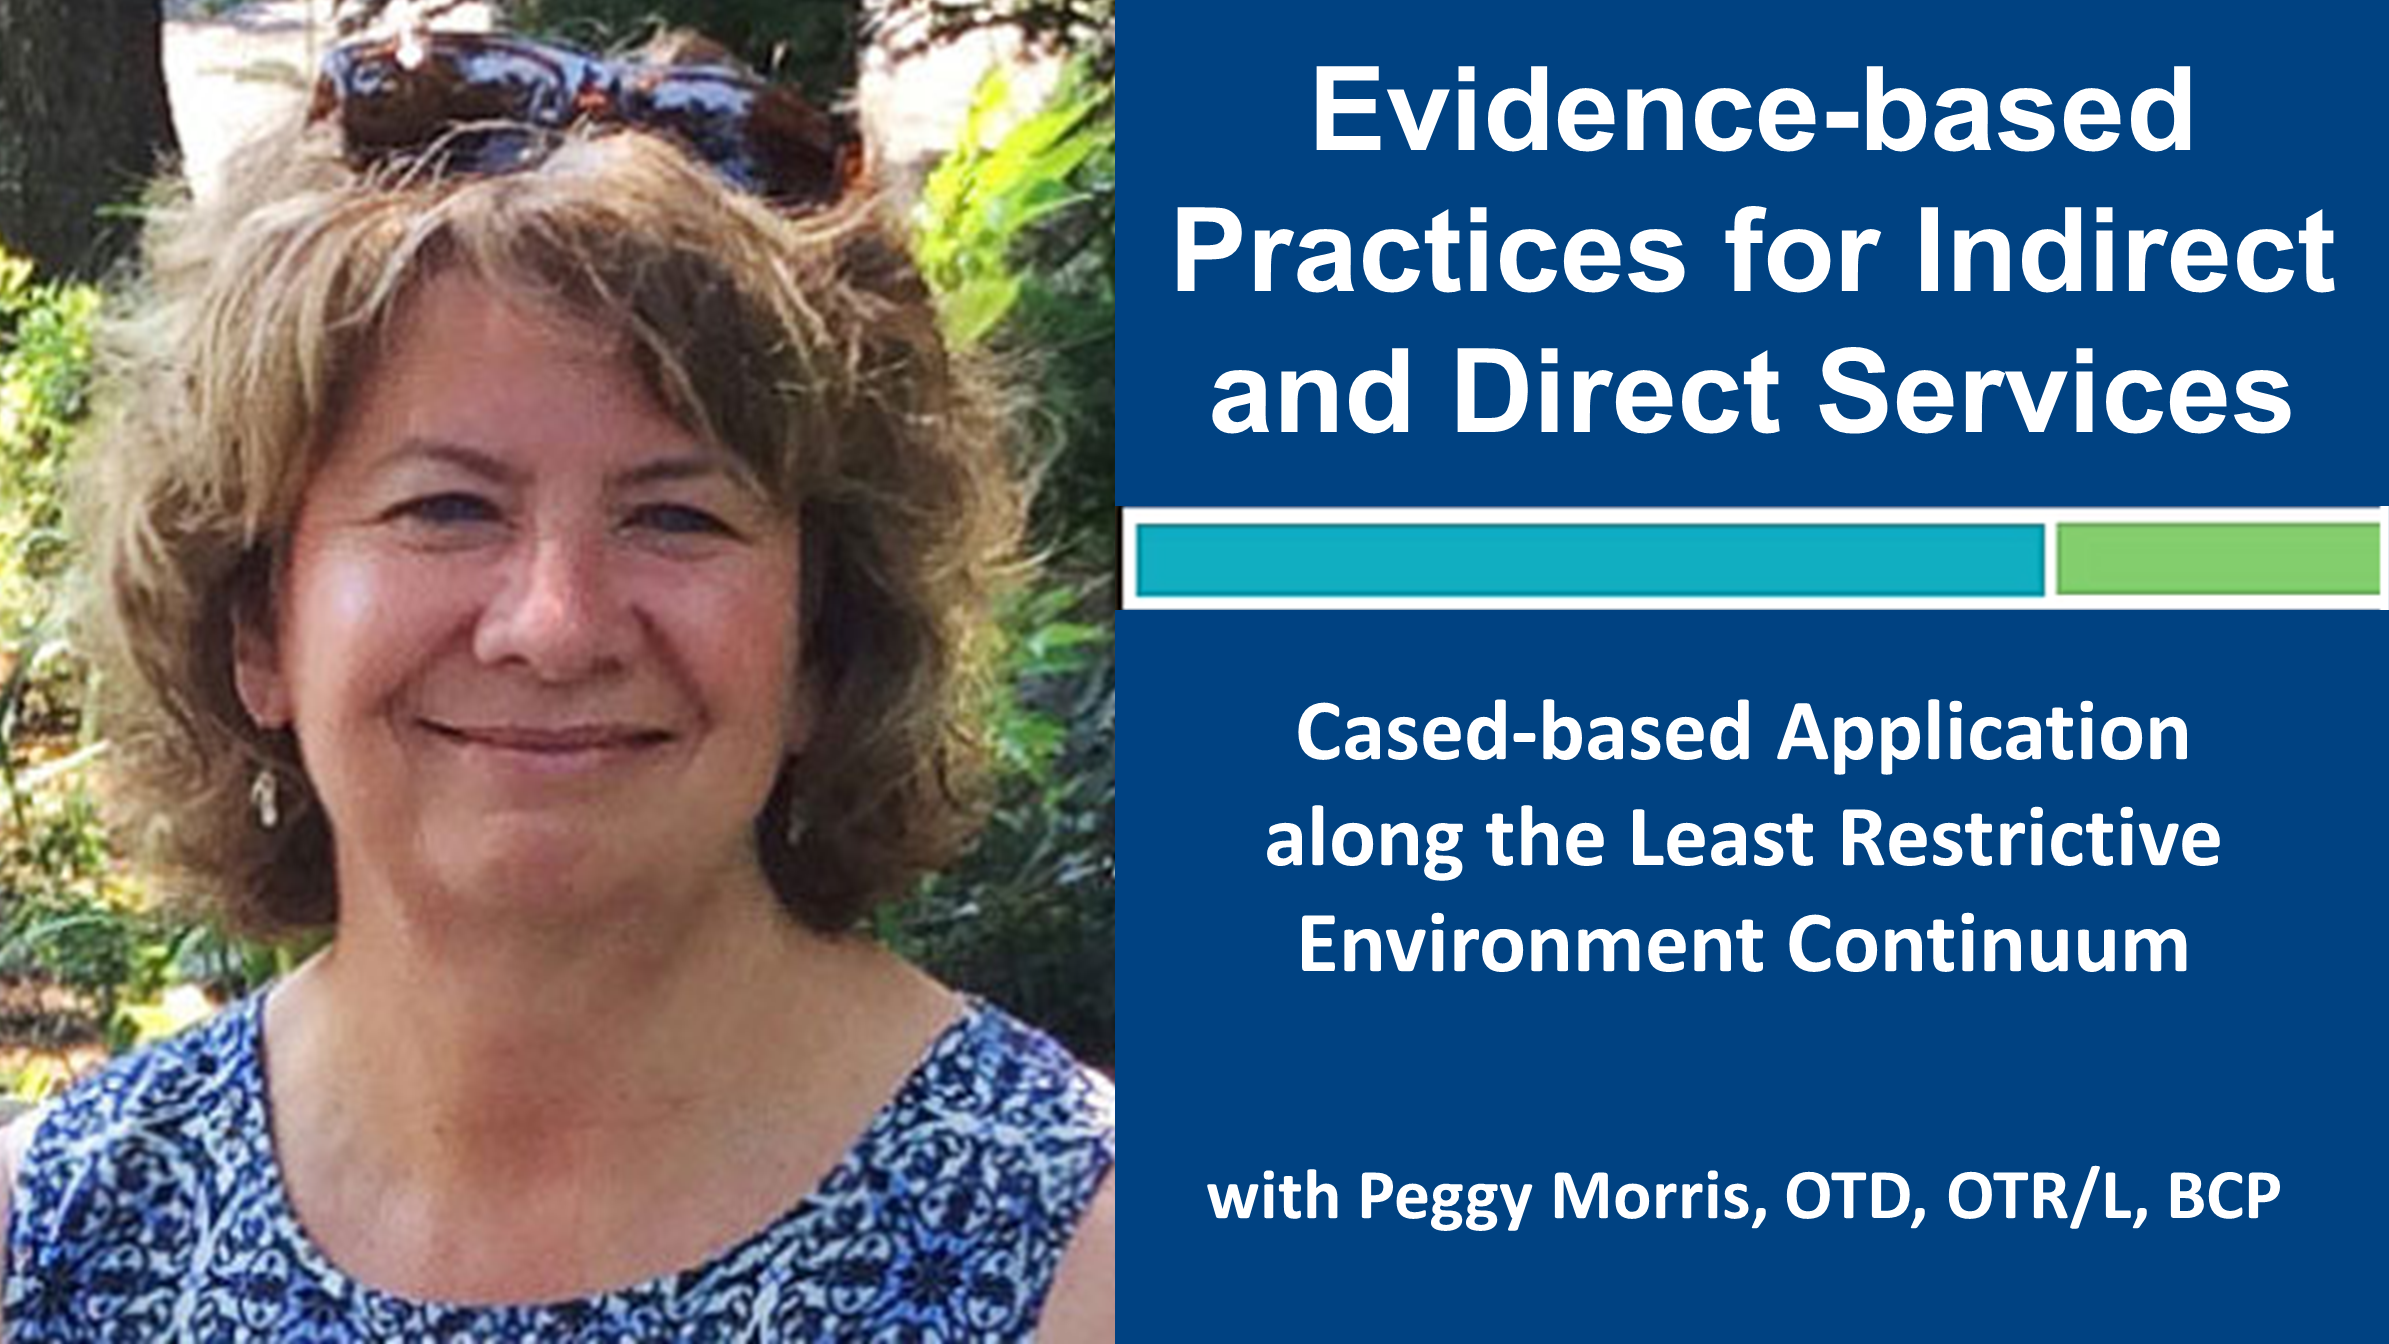 Evidence-based Practices for Indirect and Direct Services with Peggy Morris, OTD, OTR/L, BCP